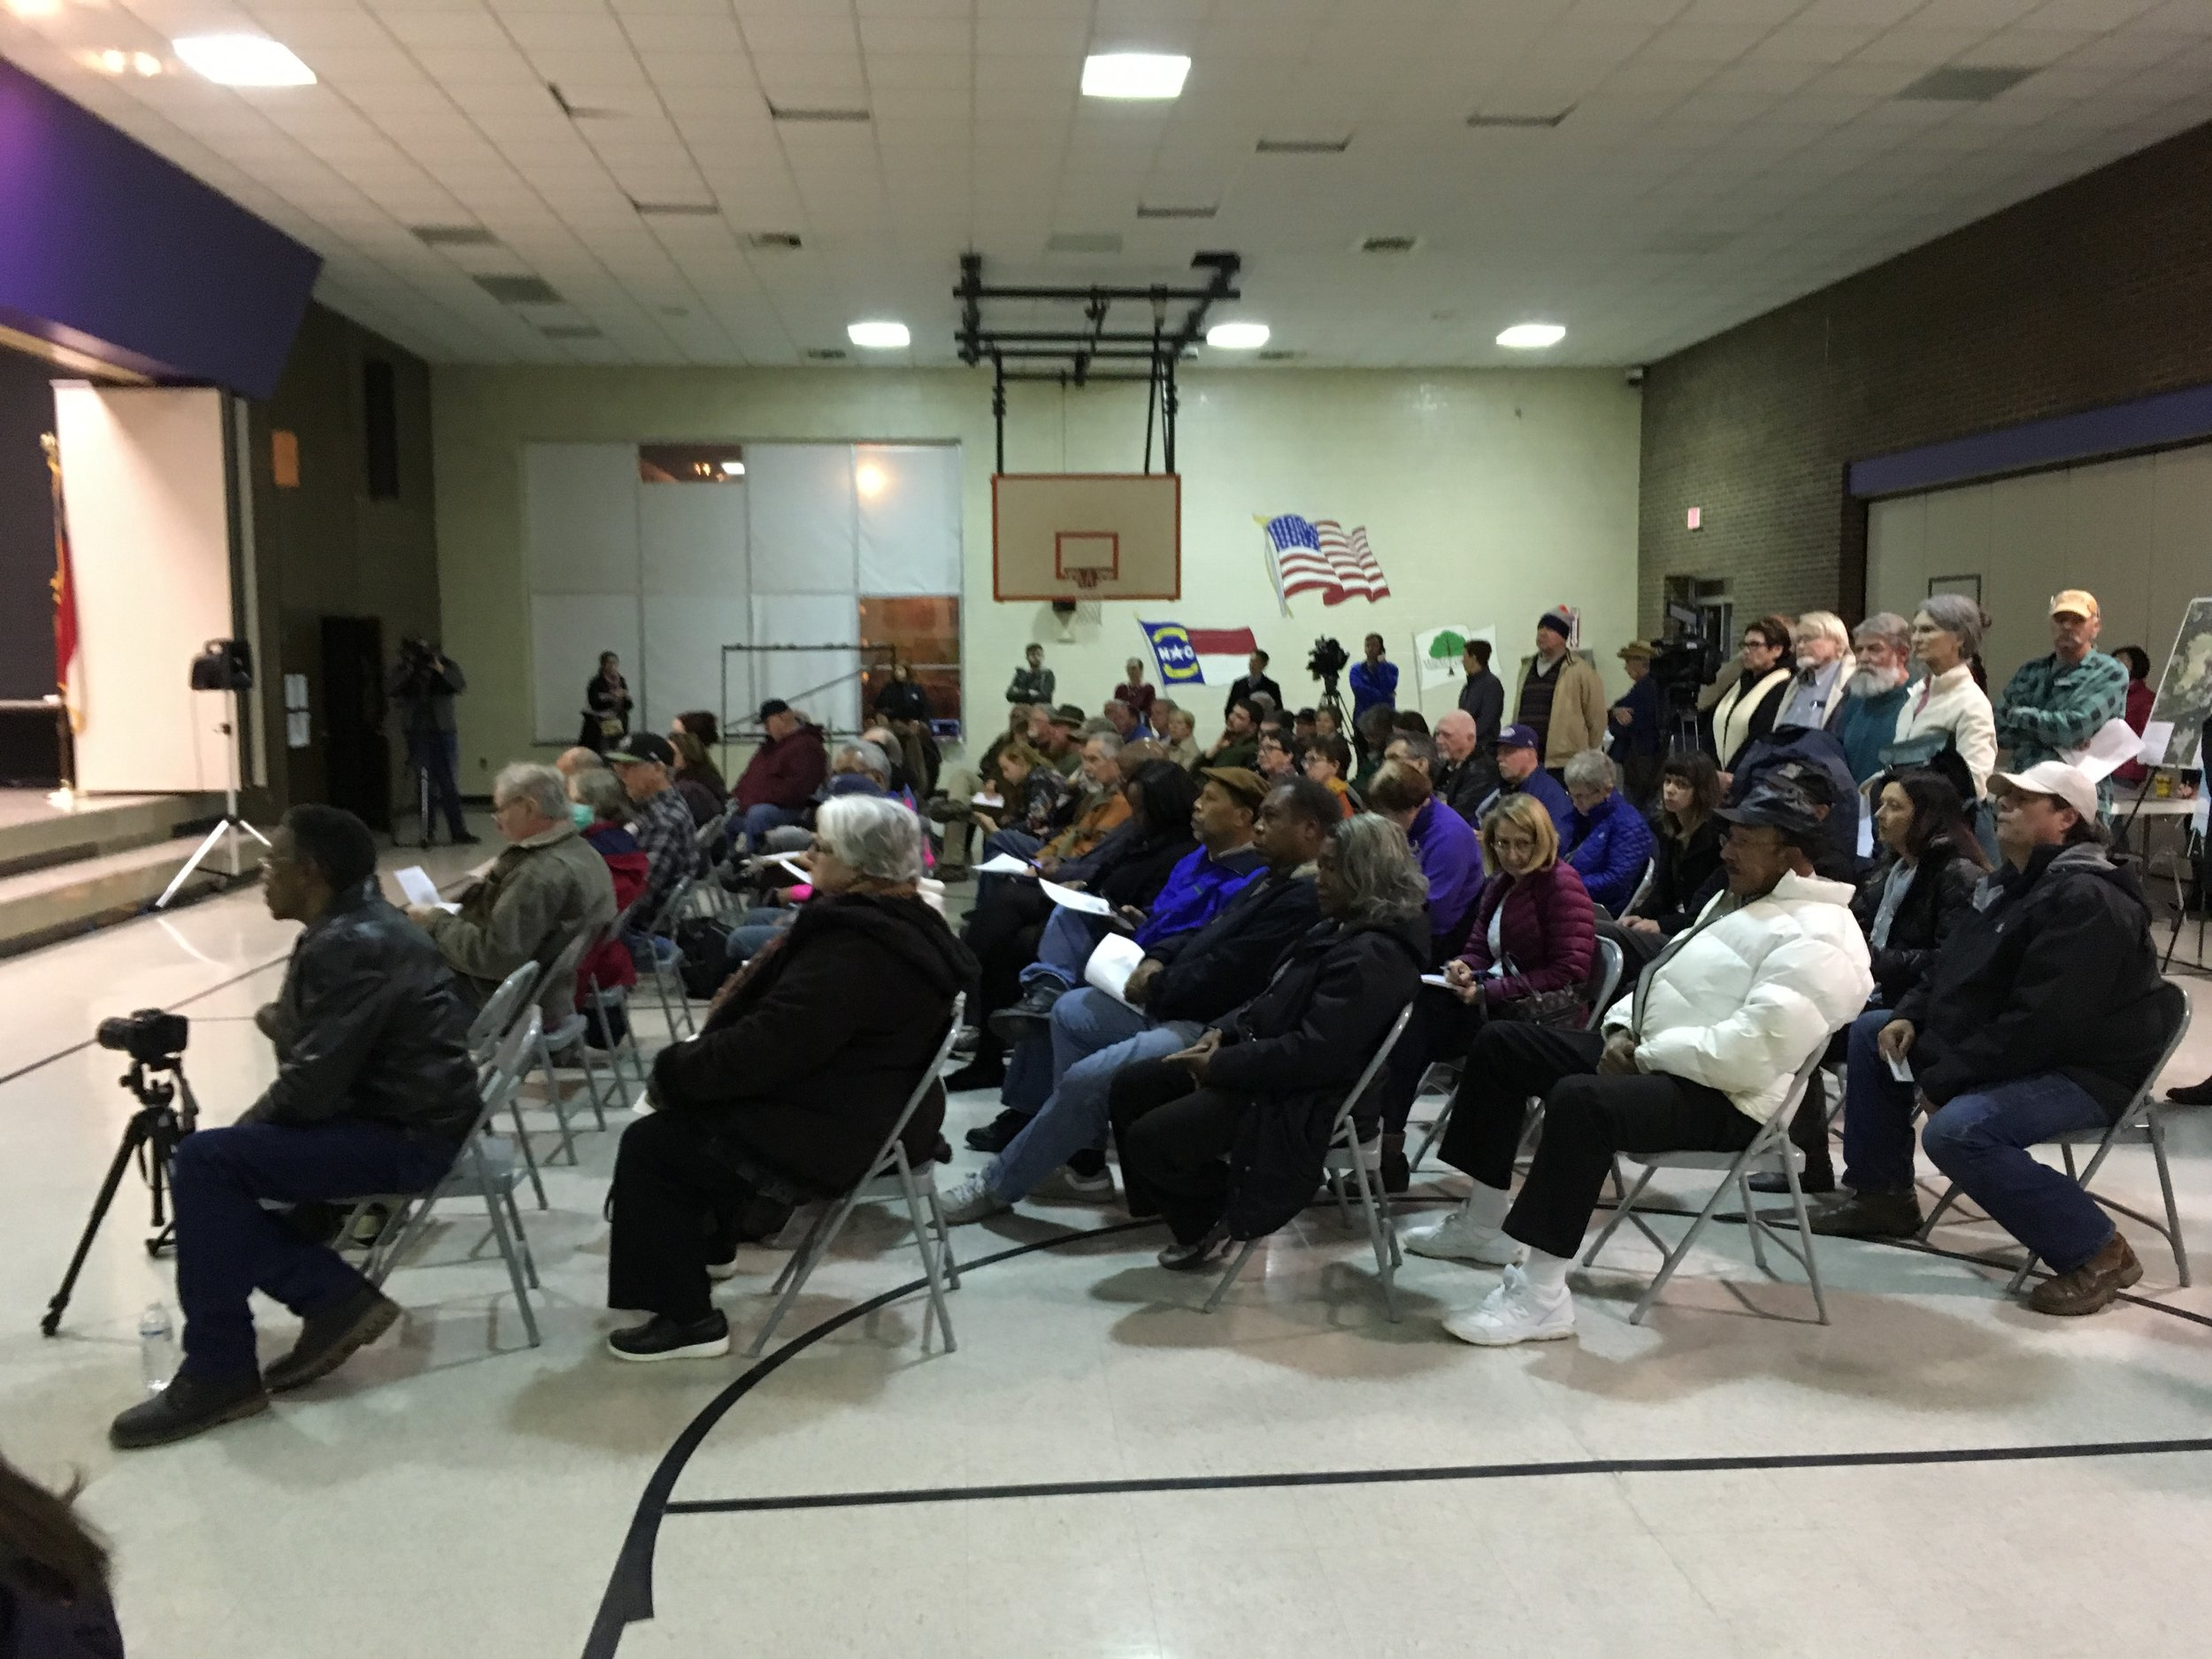 A full house despite the cold weather and numerous impacted community members attending a funeral prior to the event.